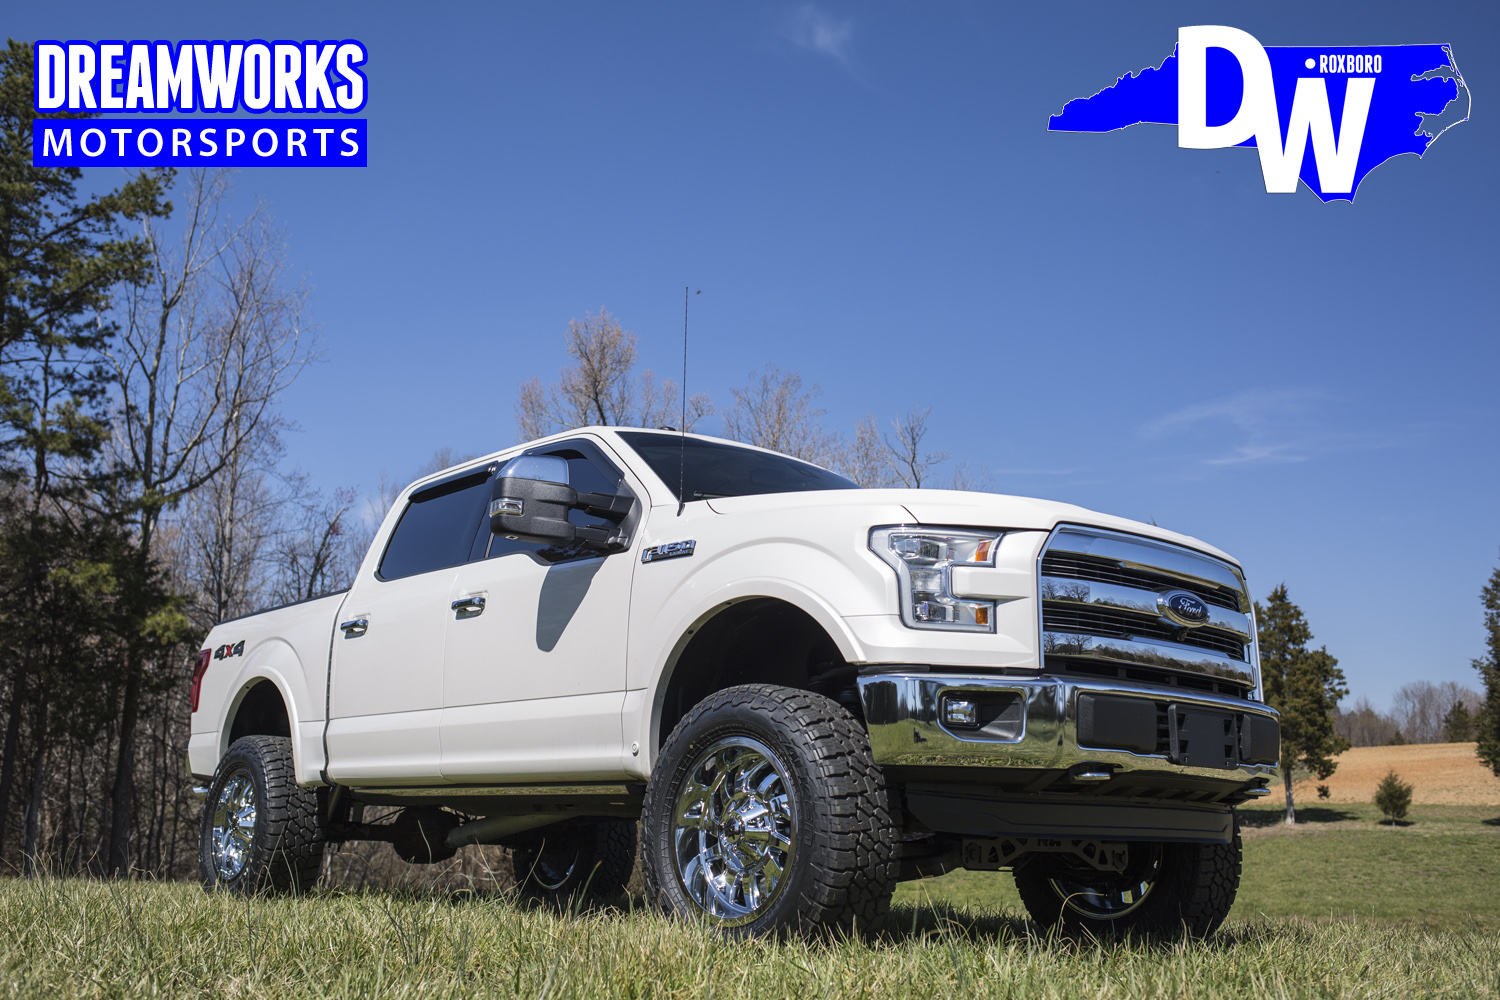 Ford_F150_By_Deamworks_Motorsports-5.jpg